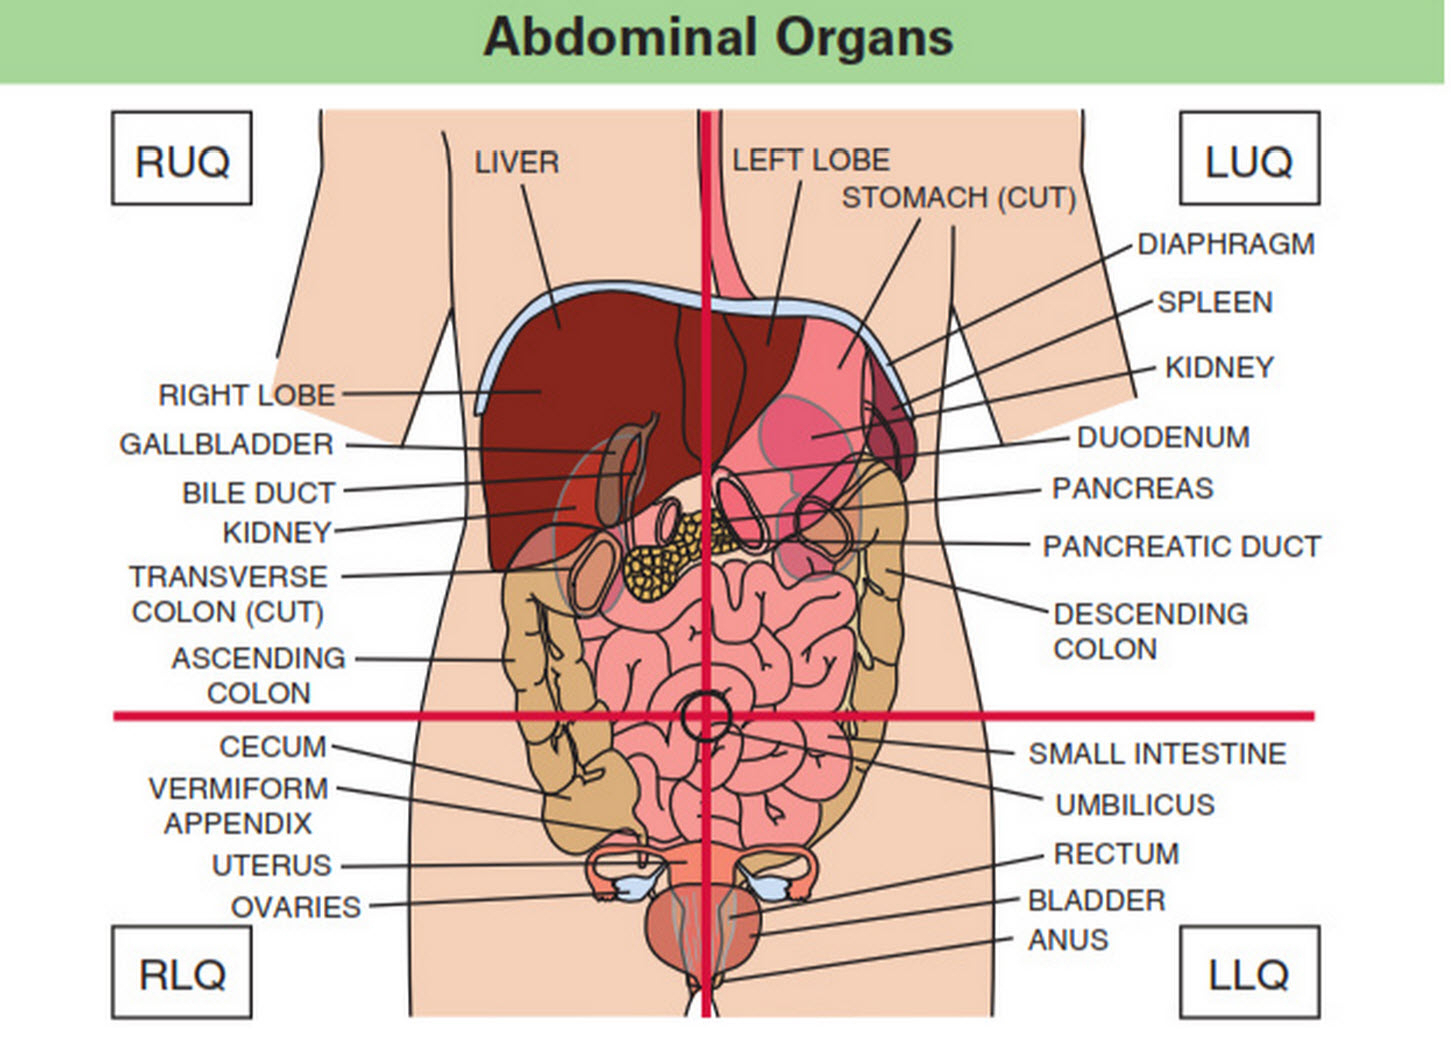 abdominal-quadrants-organs-in-the-abdominal-quadrants.jpg